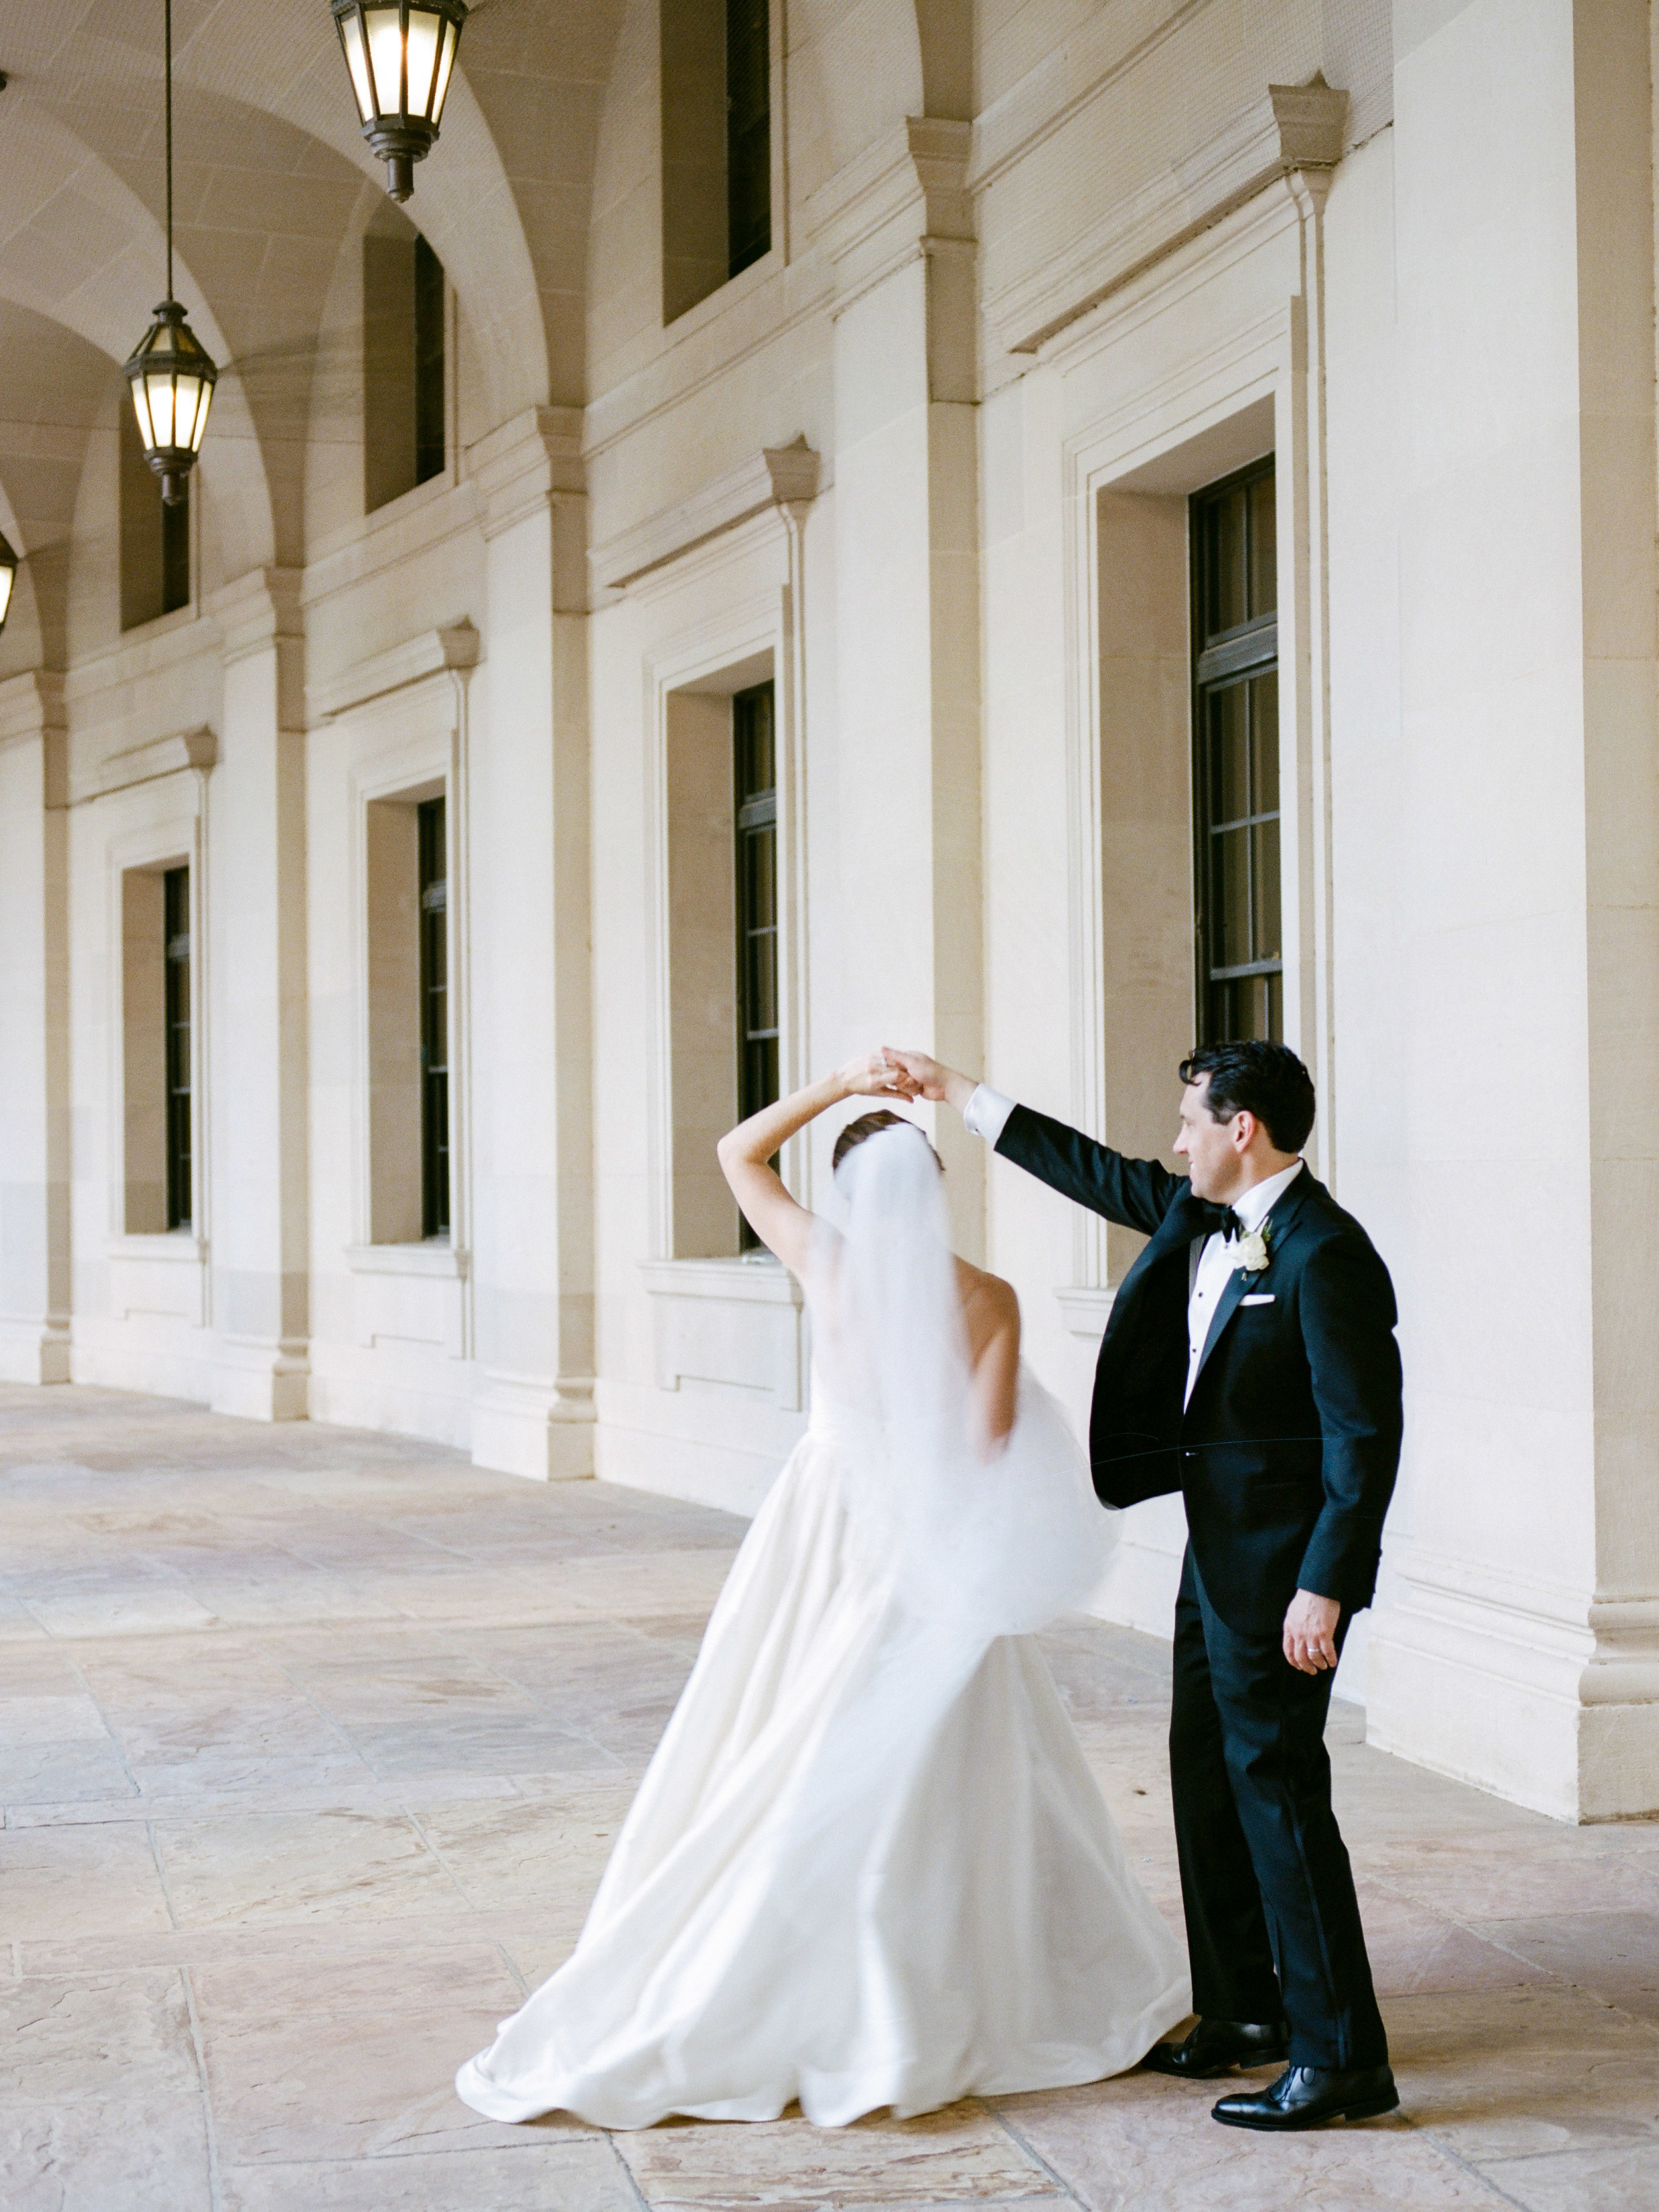 Summer Wedding at The National Museum of Women in the Arts Washington DC by fine are wedding photographer Lissa Ryan Photography